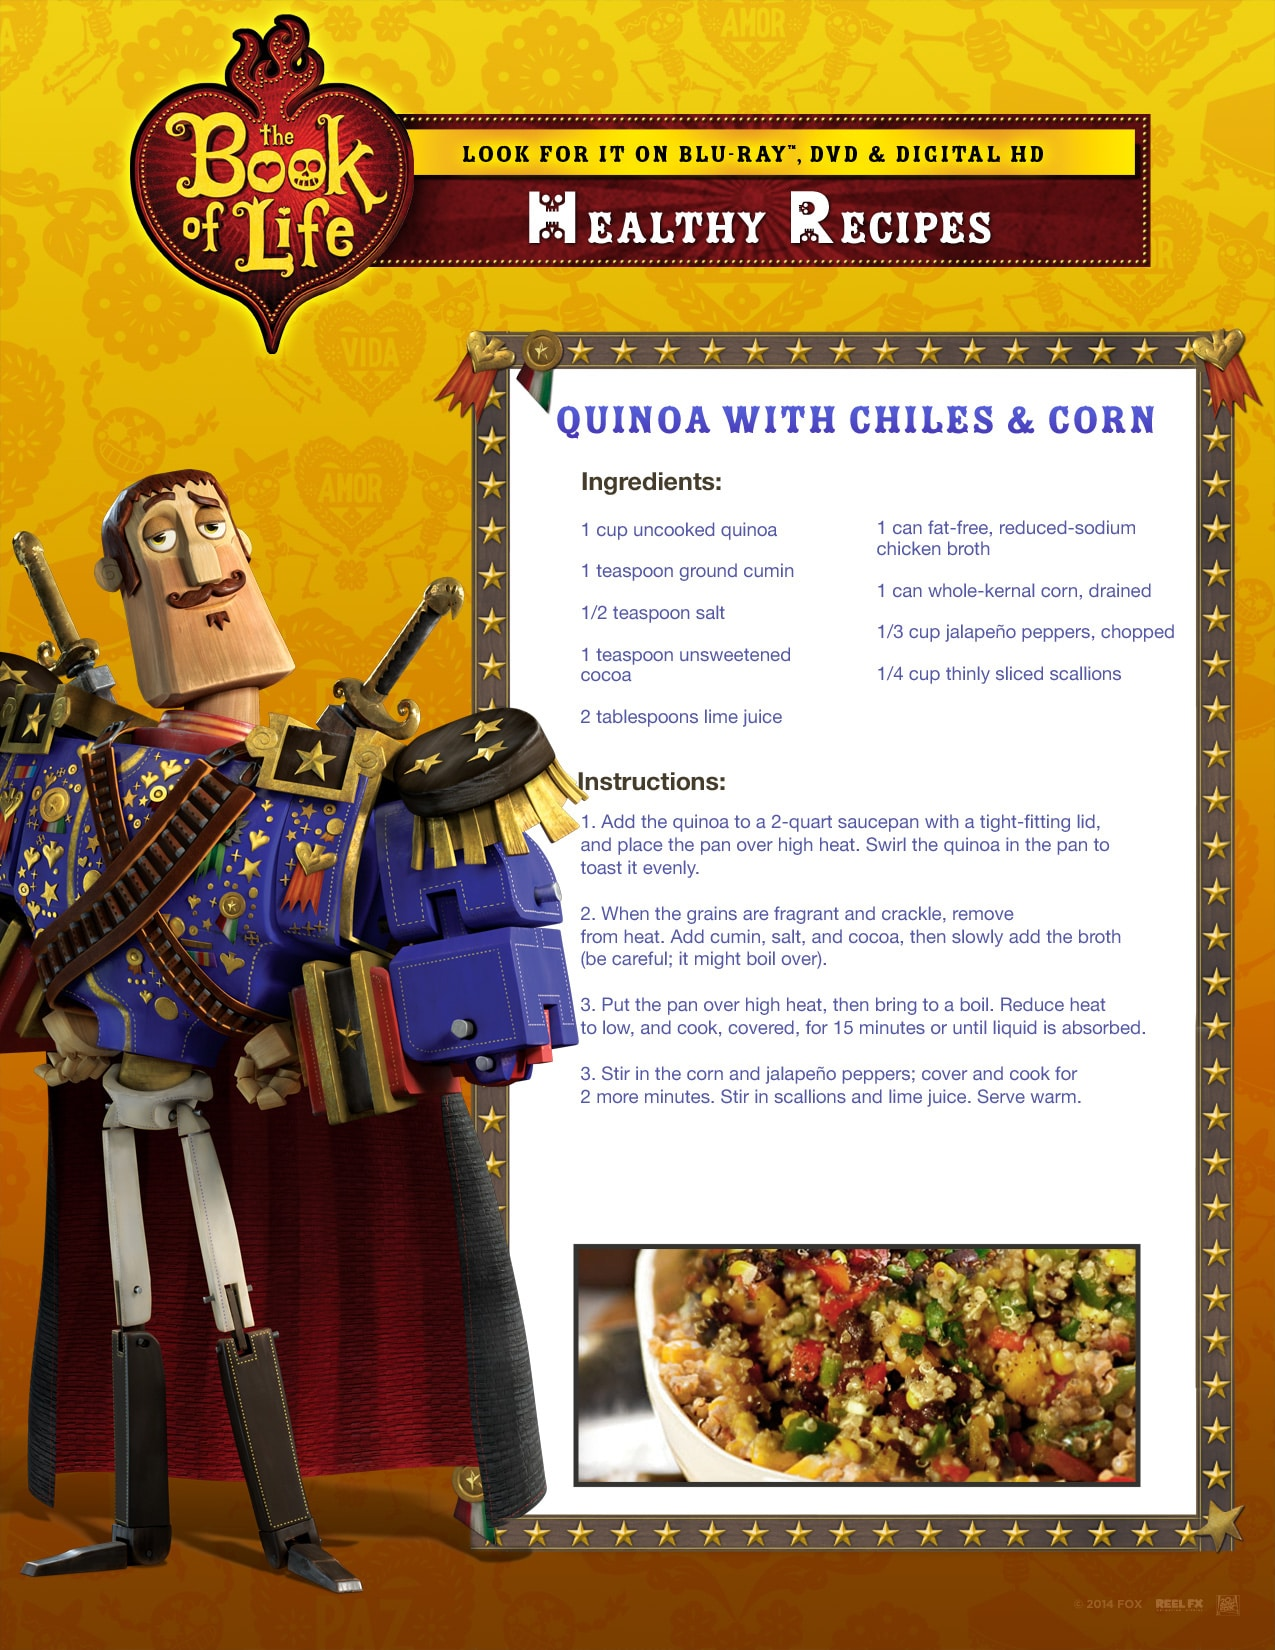 Book of life for coloring - Recipe 2